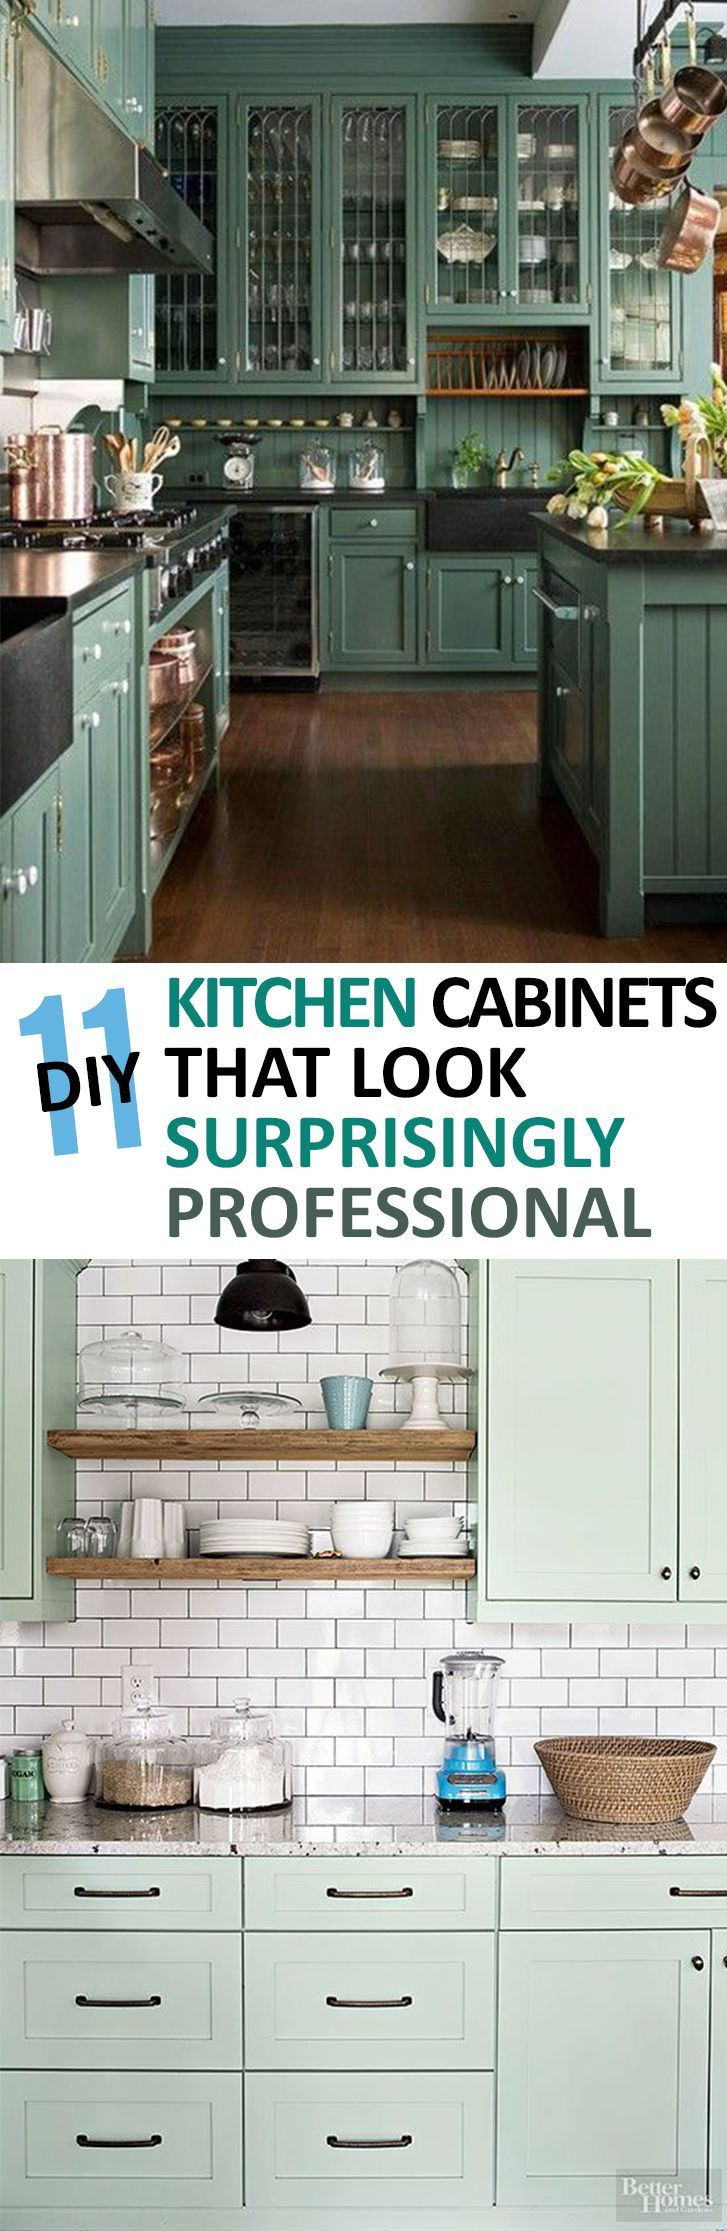 11 Painted Kitchen Cabinets that Look Surprisingly